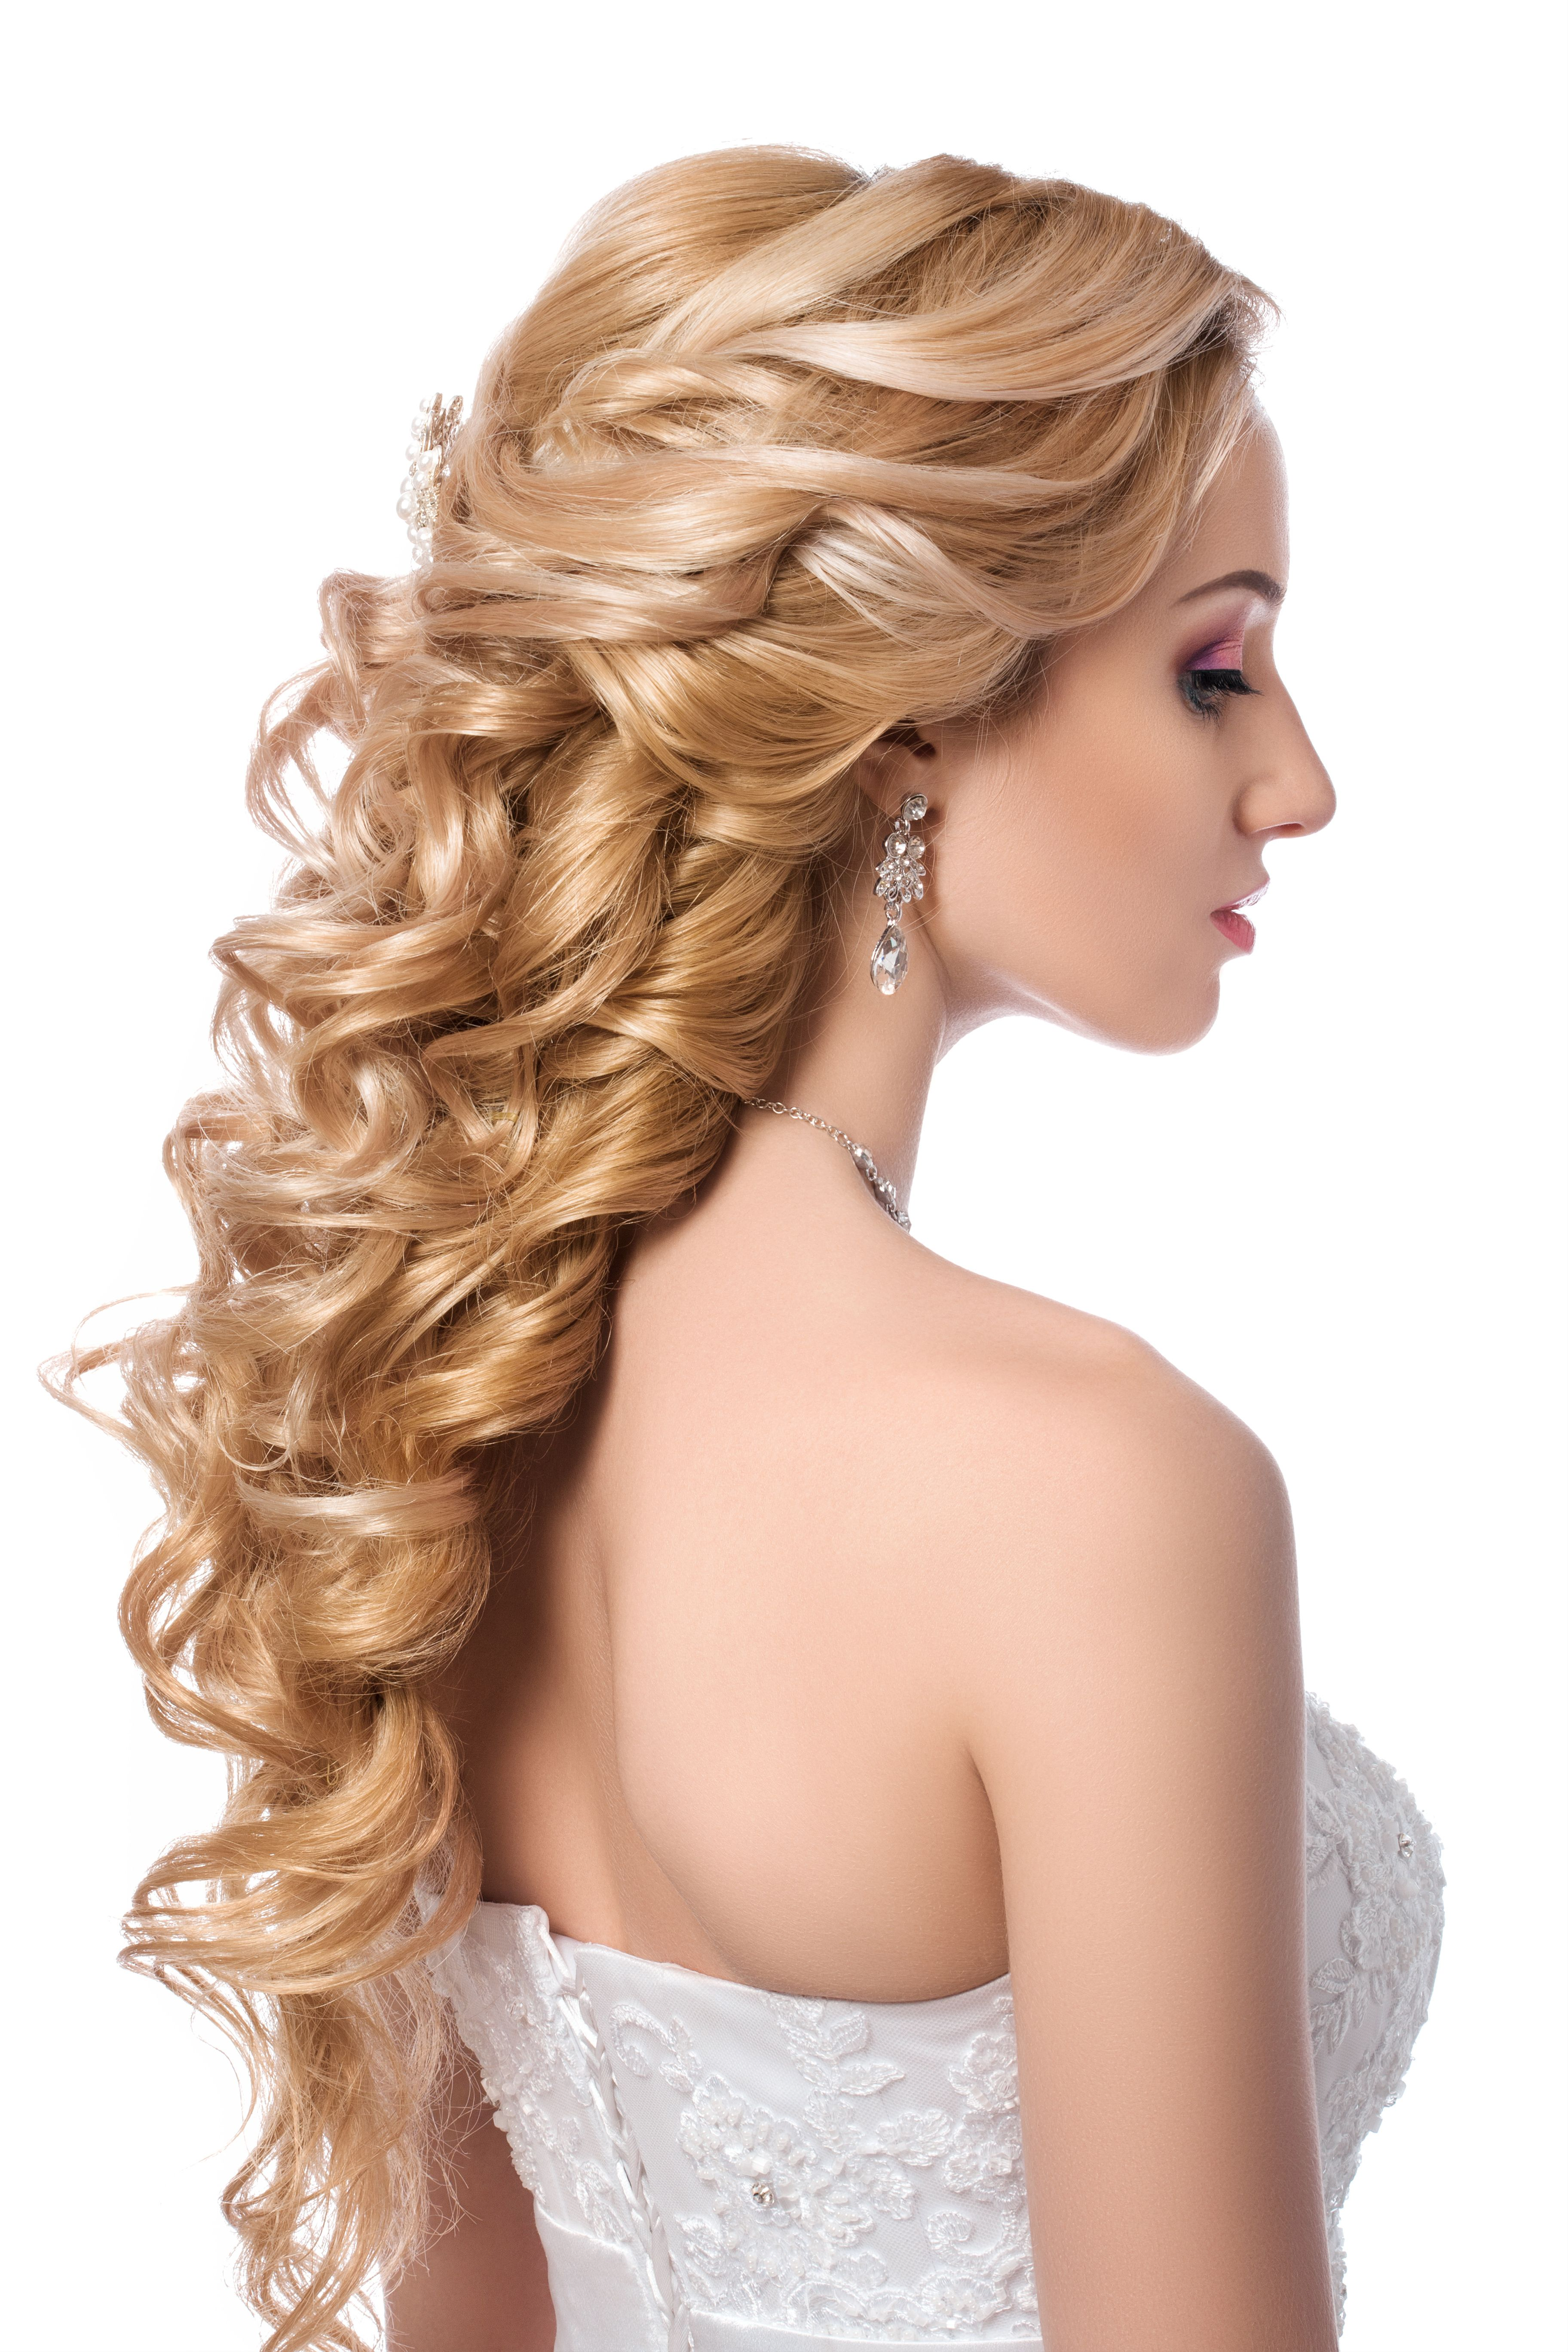 long curled hairstyle | fiesta xv | pinterest | winter hairstyles